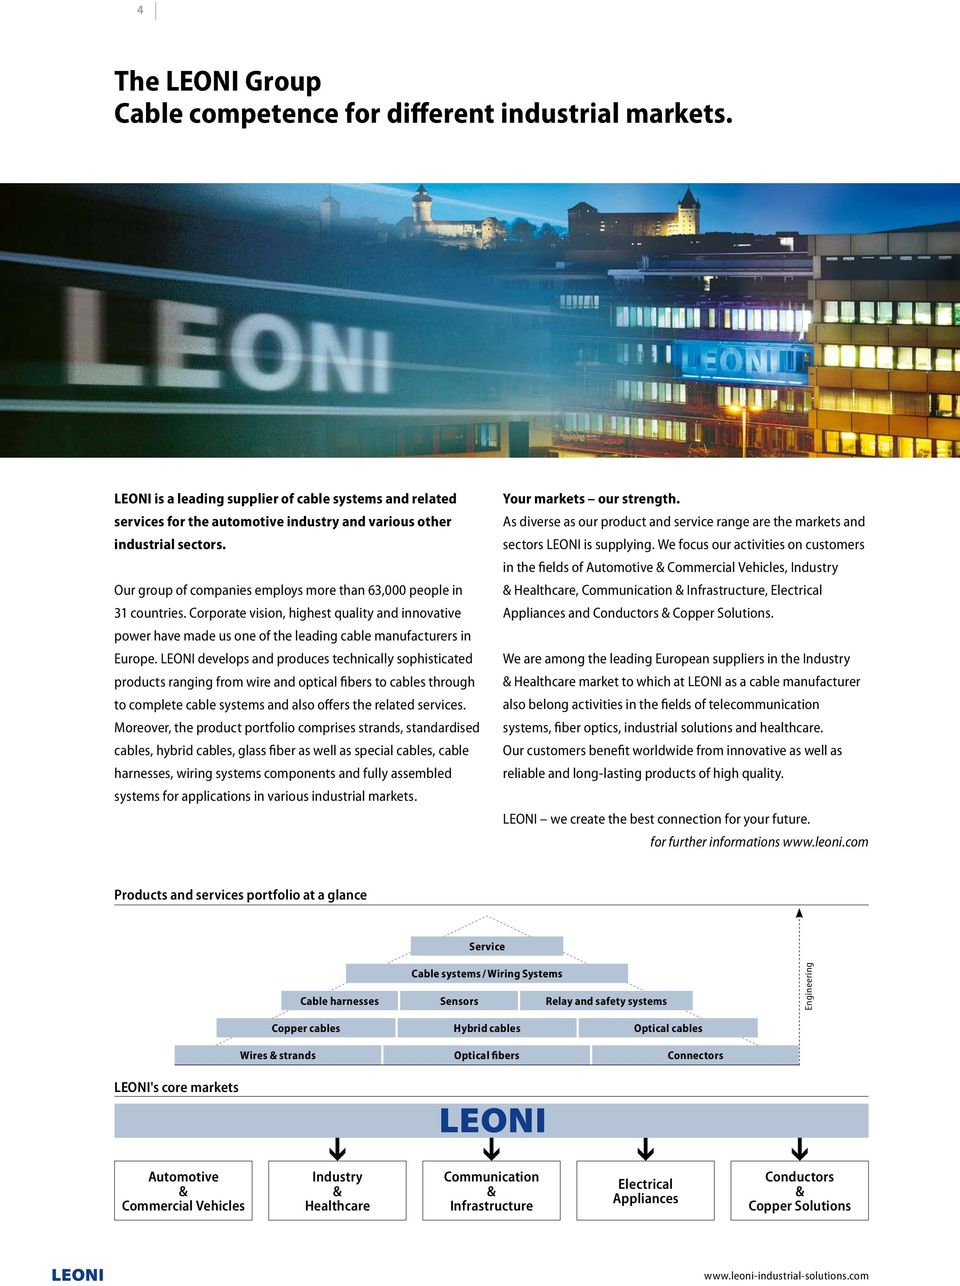 LEONI develops and produces technically sophisticated products ranging from wire and optical fibers to cables through to complete cable and also offers the related services.